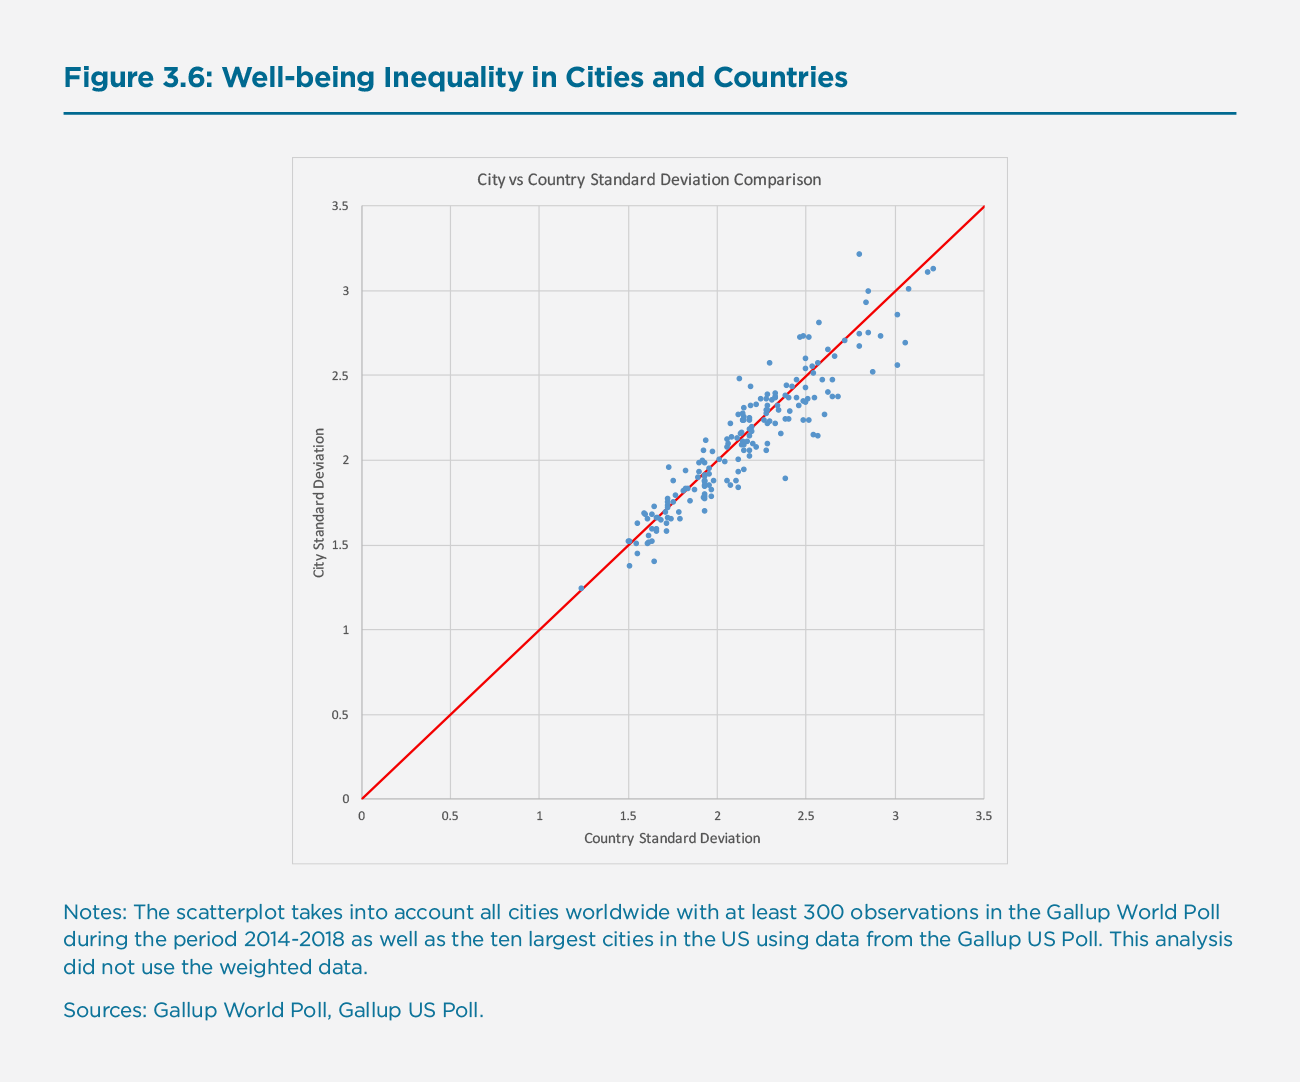 Figure 3.6: Well-being Inequality in Cities and Countries